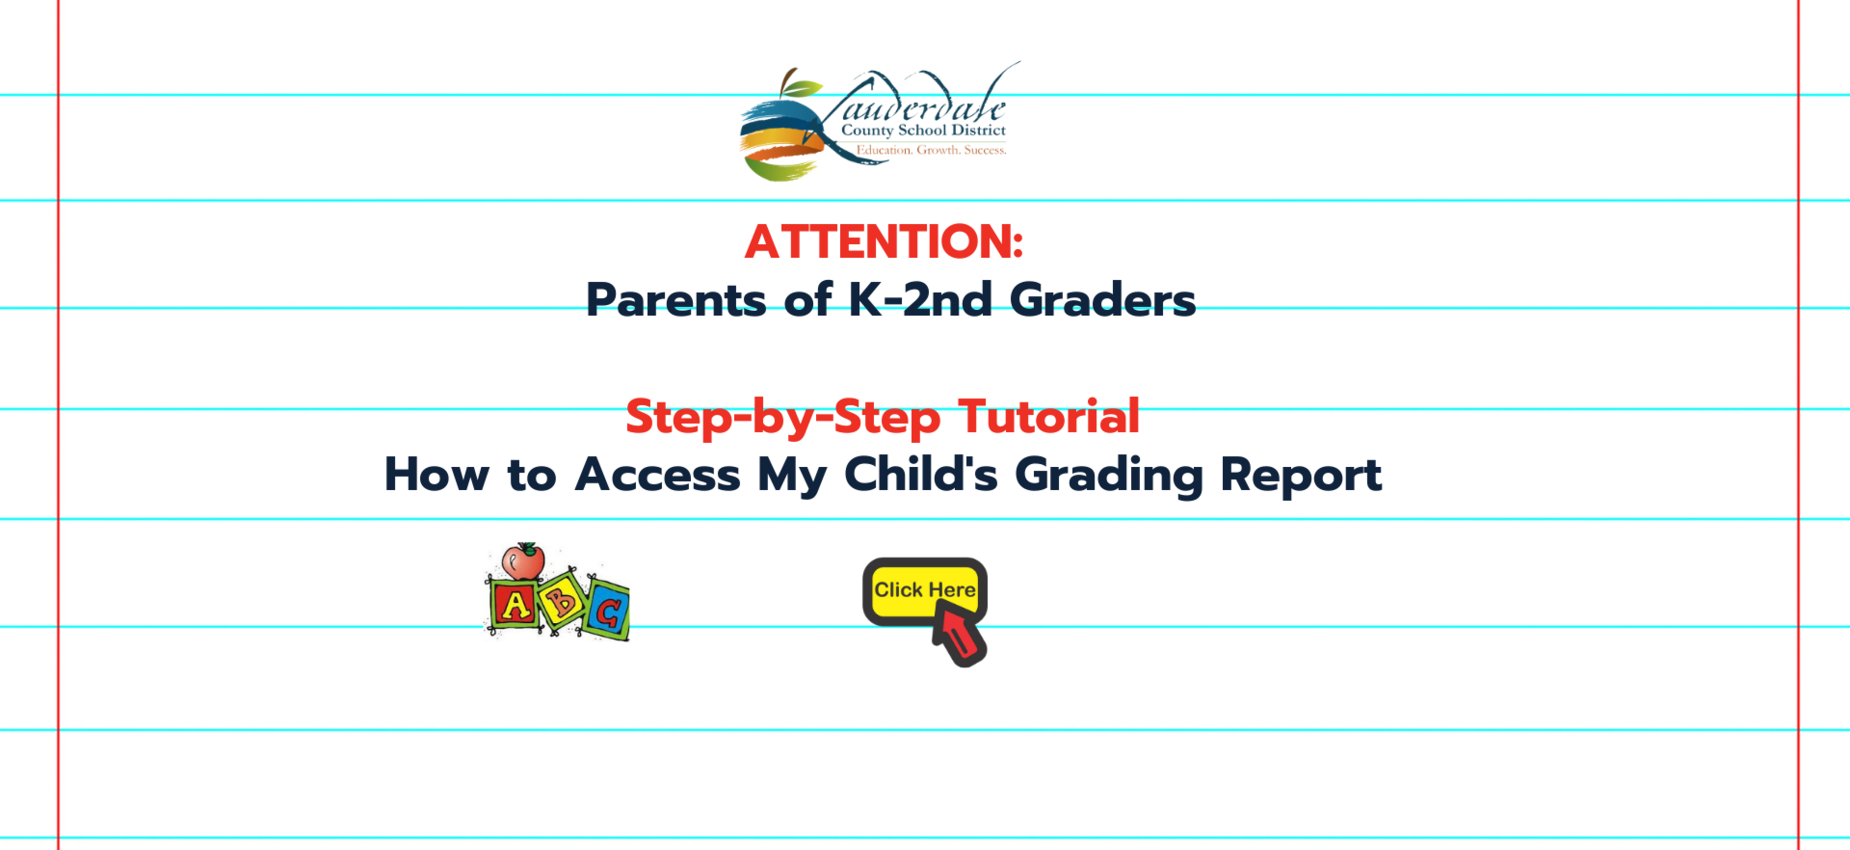 Tutorials on How to Access K-2nd Grade Grading Reports